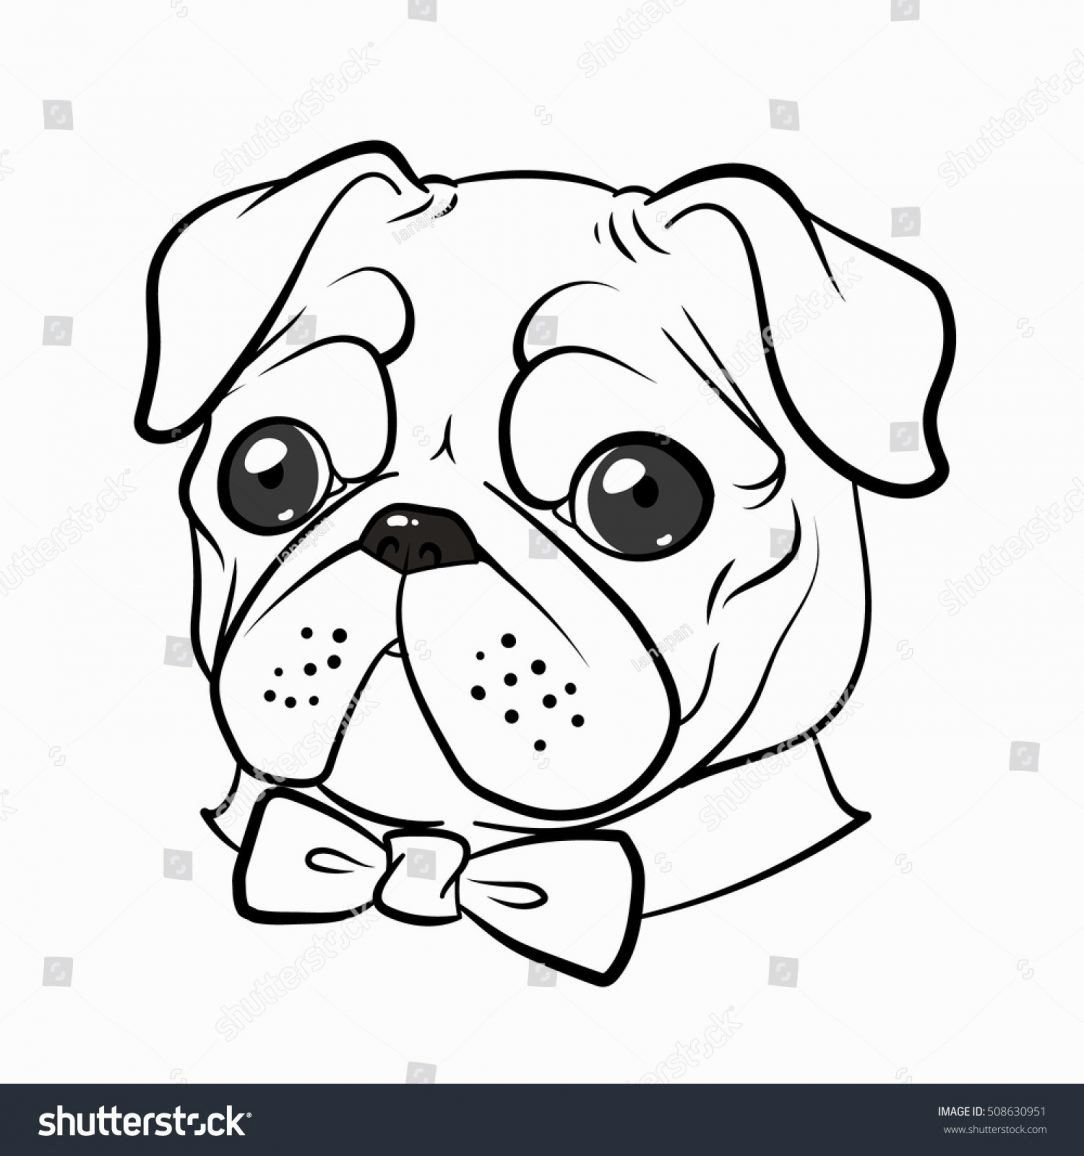 Realistic Dog Coloring Page Fresh Coloring Book Dogng Pages